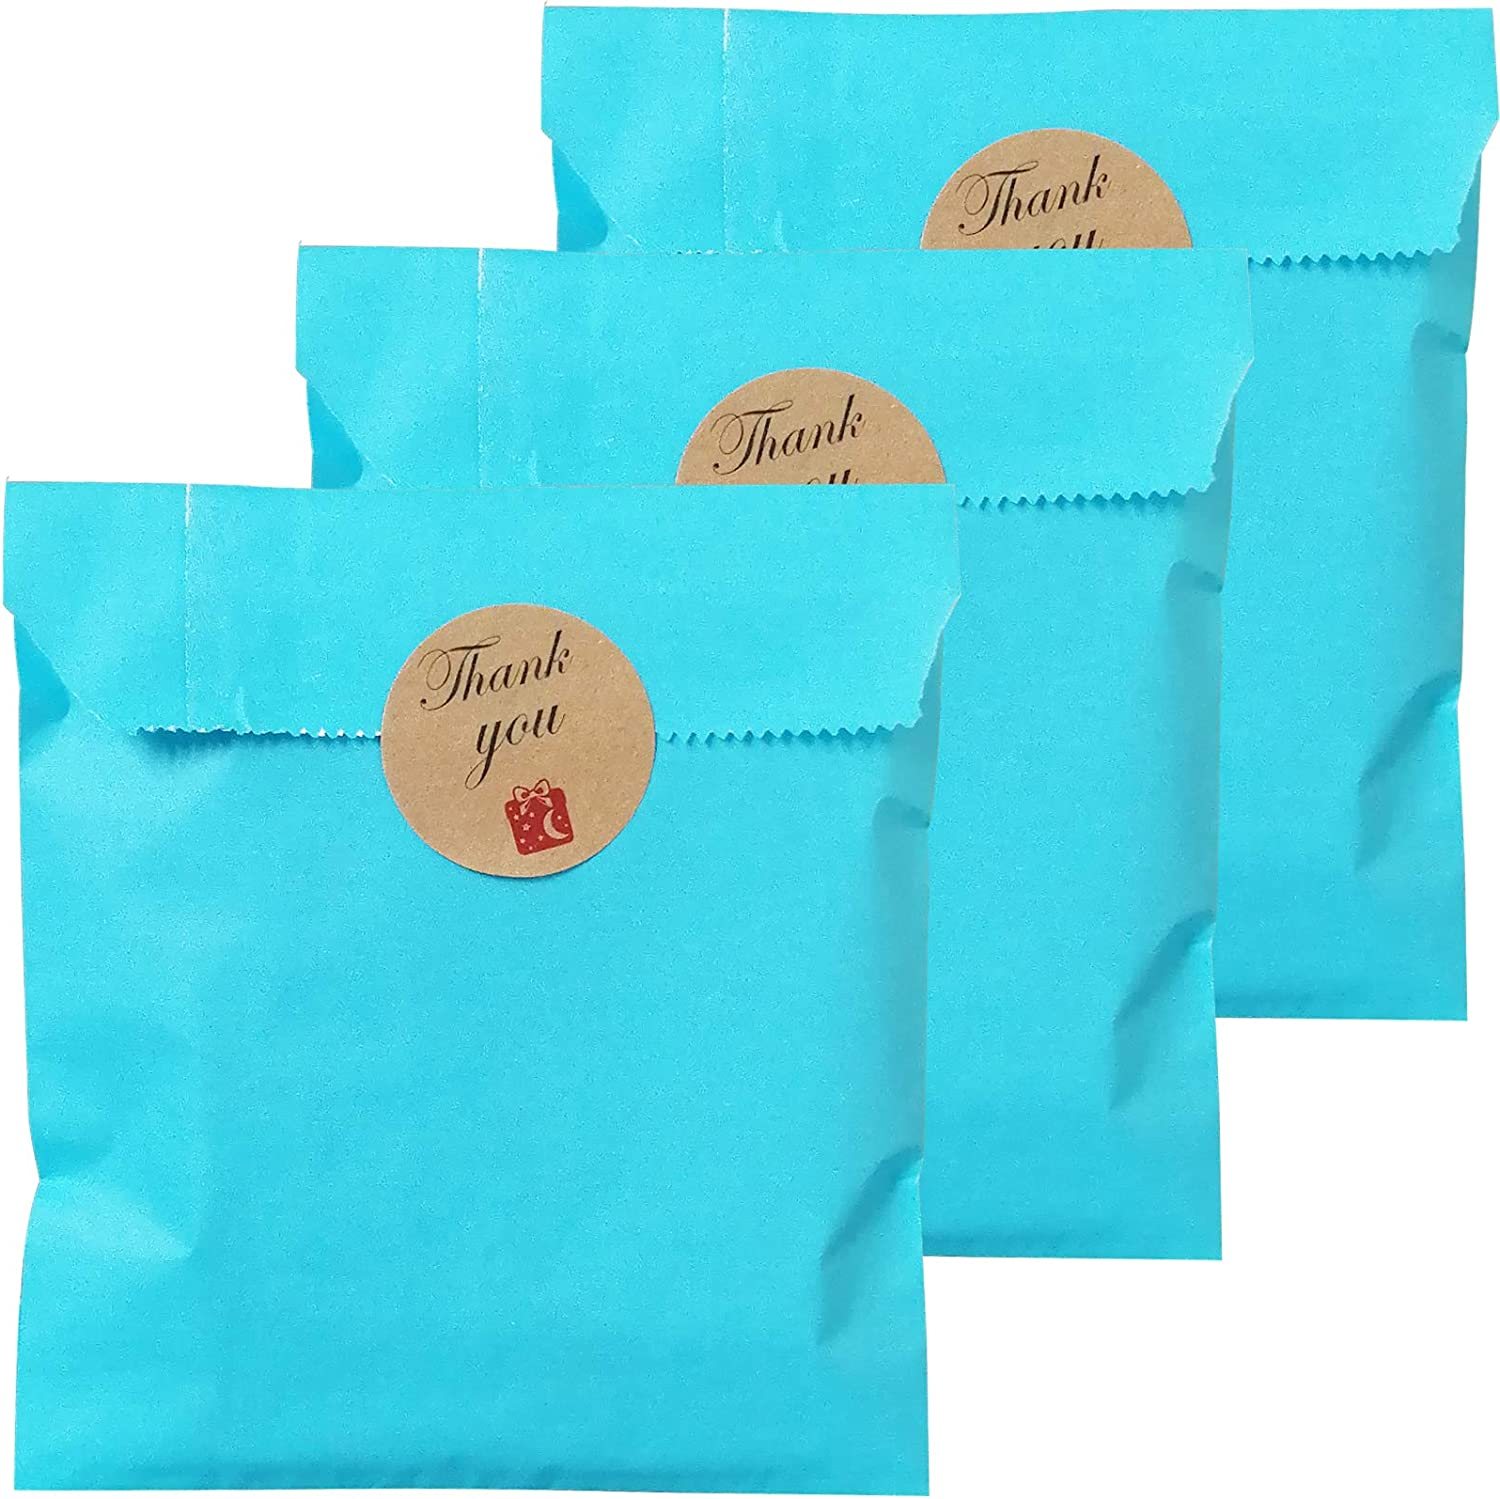 Party Favor Bag 5 * 7 inch, 100 pcs Food Safe Kraft Paper and Ink, Natural (Biodegradable), Vivid Colored Candy Cookie Buffet Bags, Flat Paper Bag with 96 pcs 1.5 inch Stickers.(Solid Sky Blue)